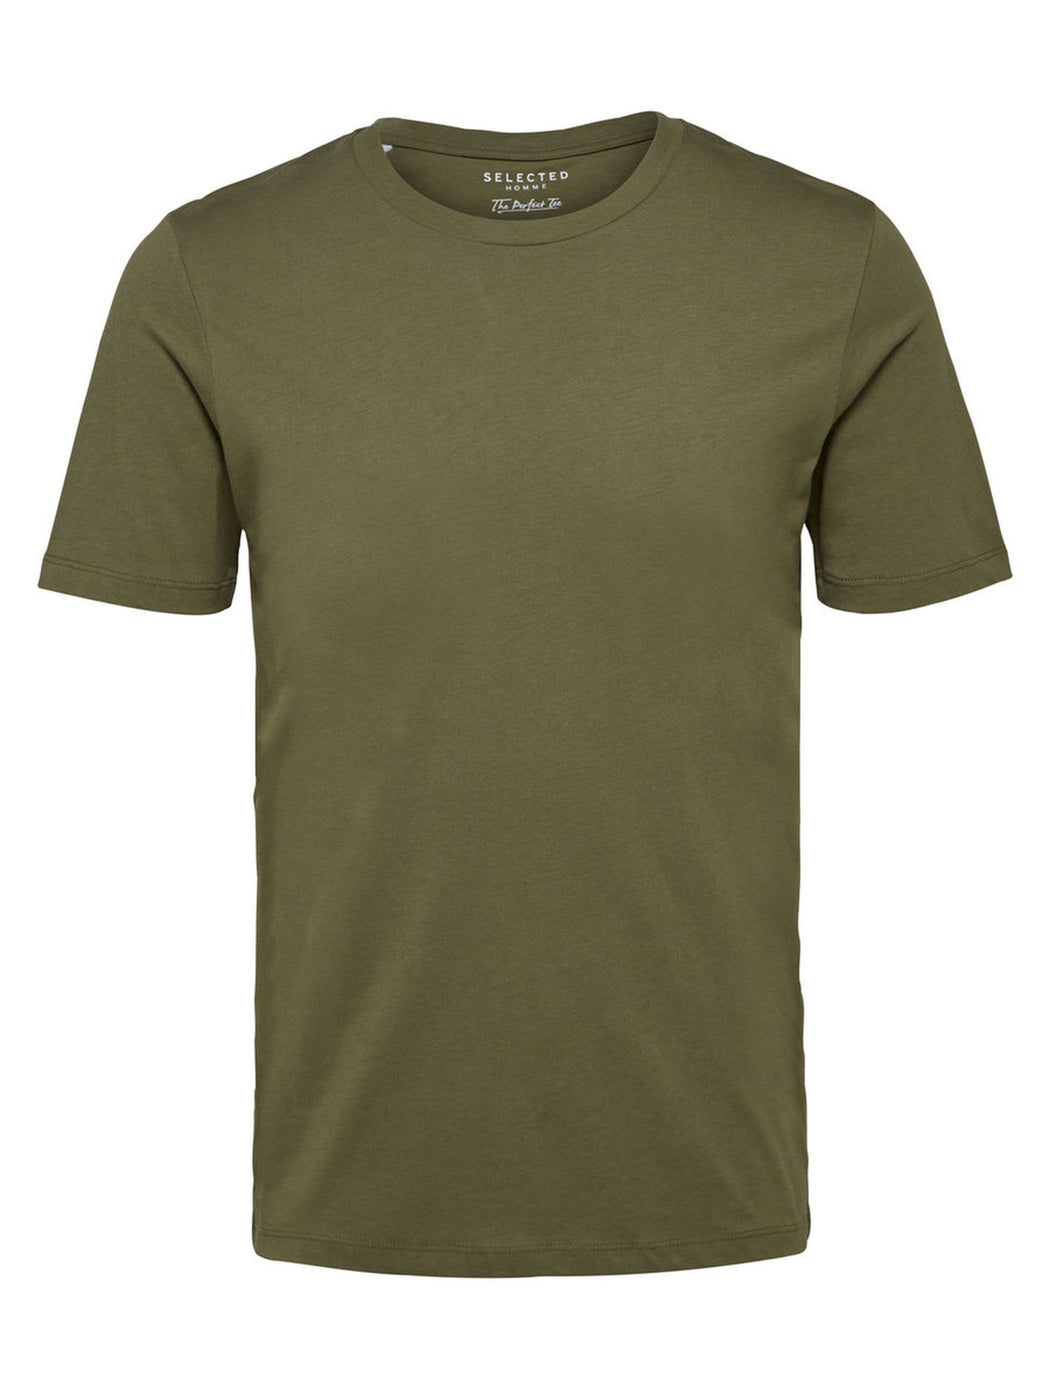 The Perfect Short Sleeve O Neck Tshirt in Dusty Olive